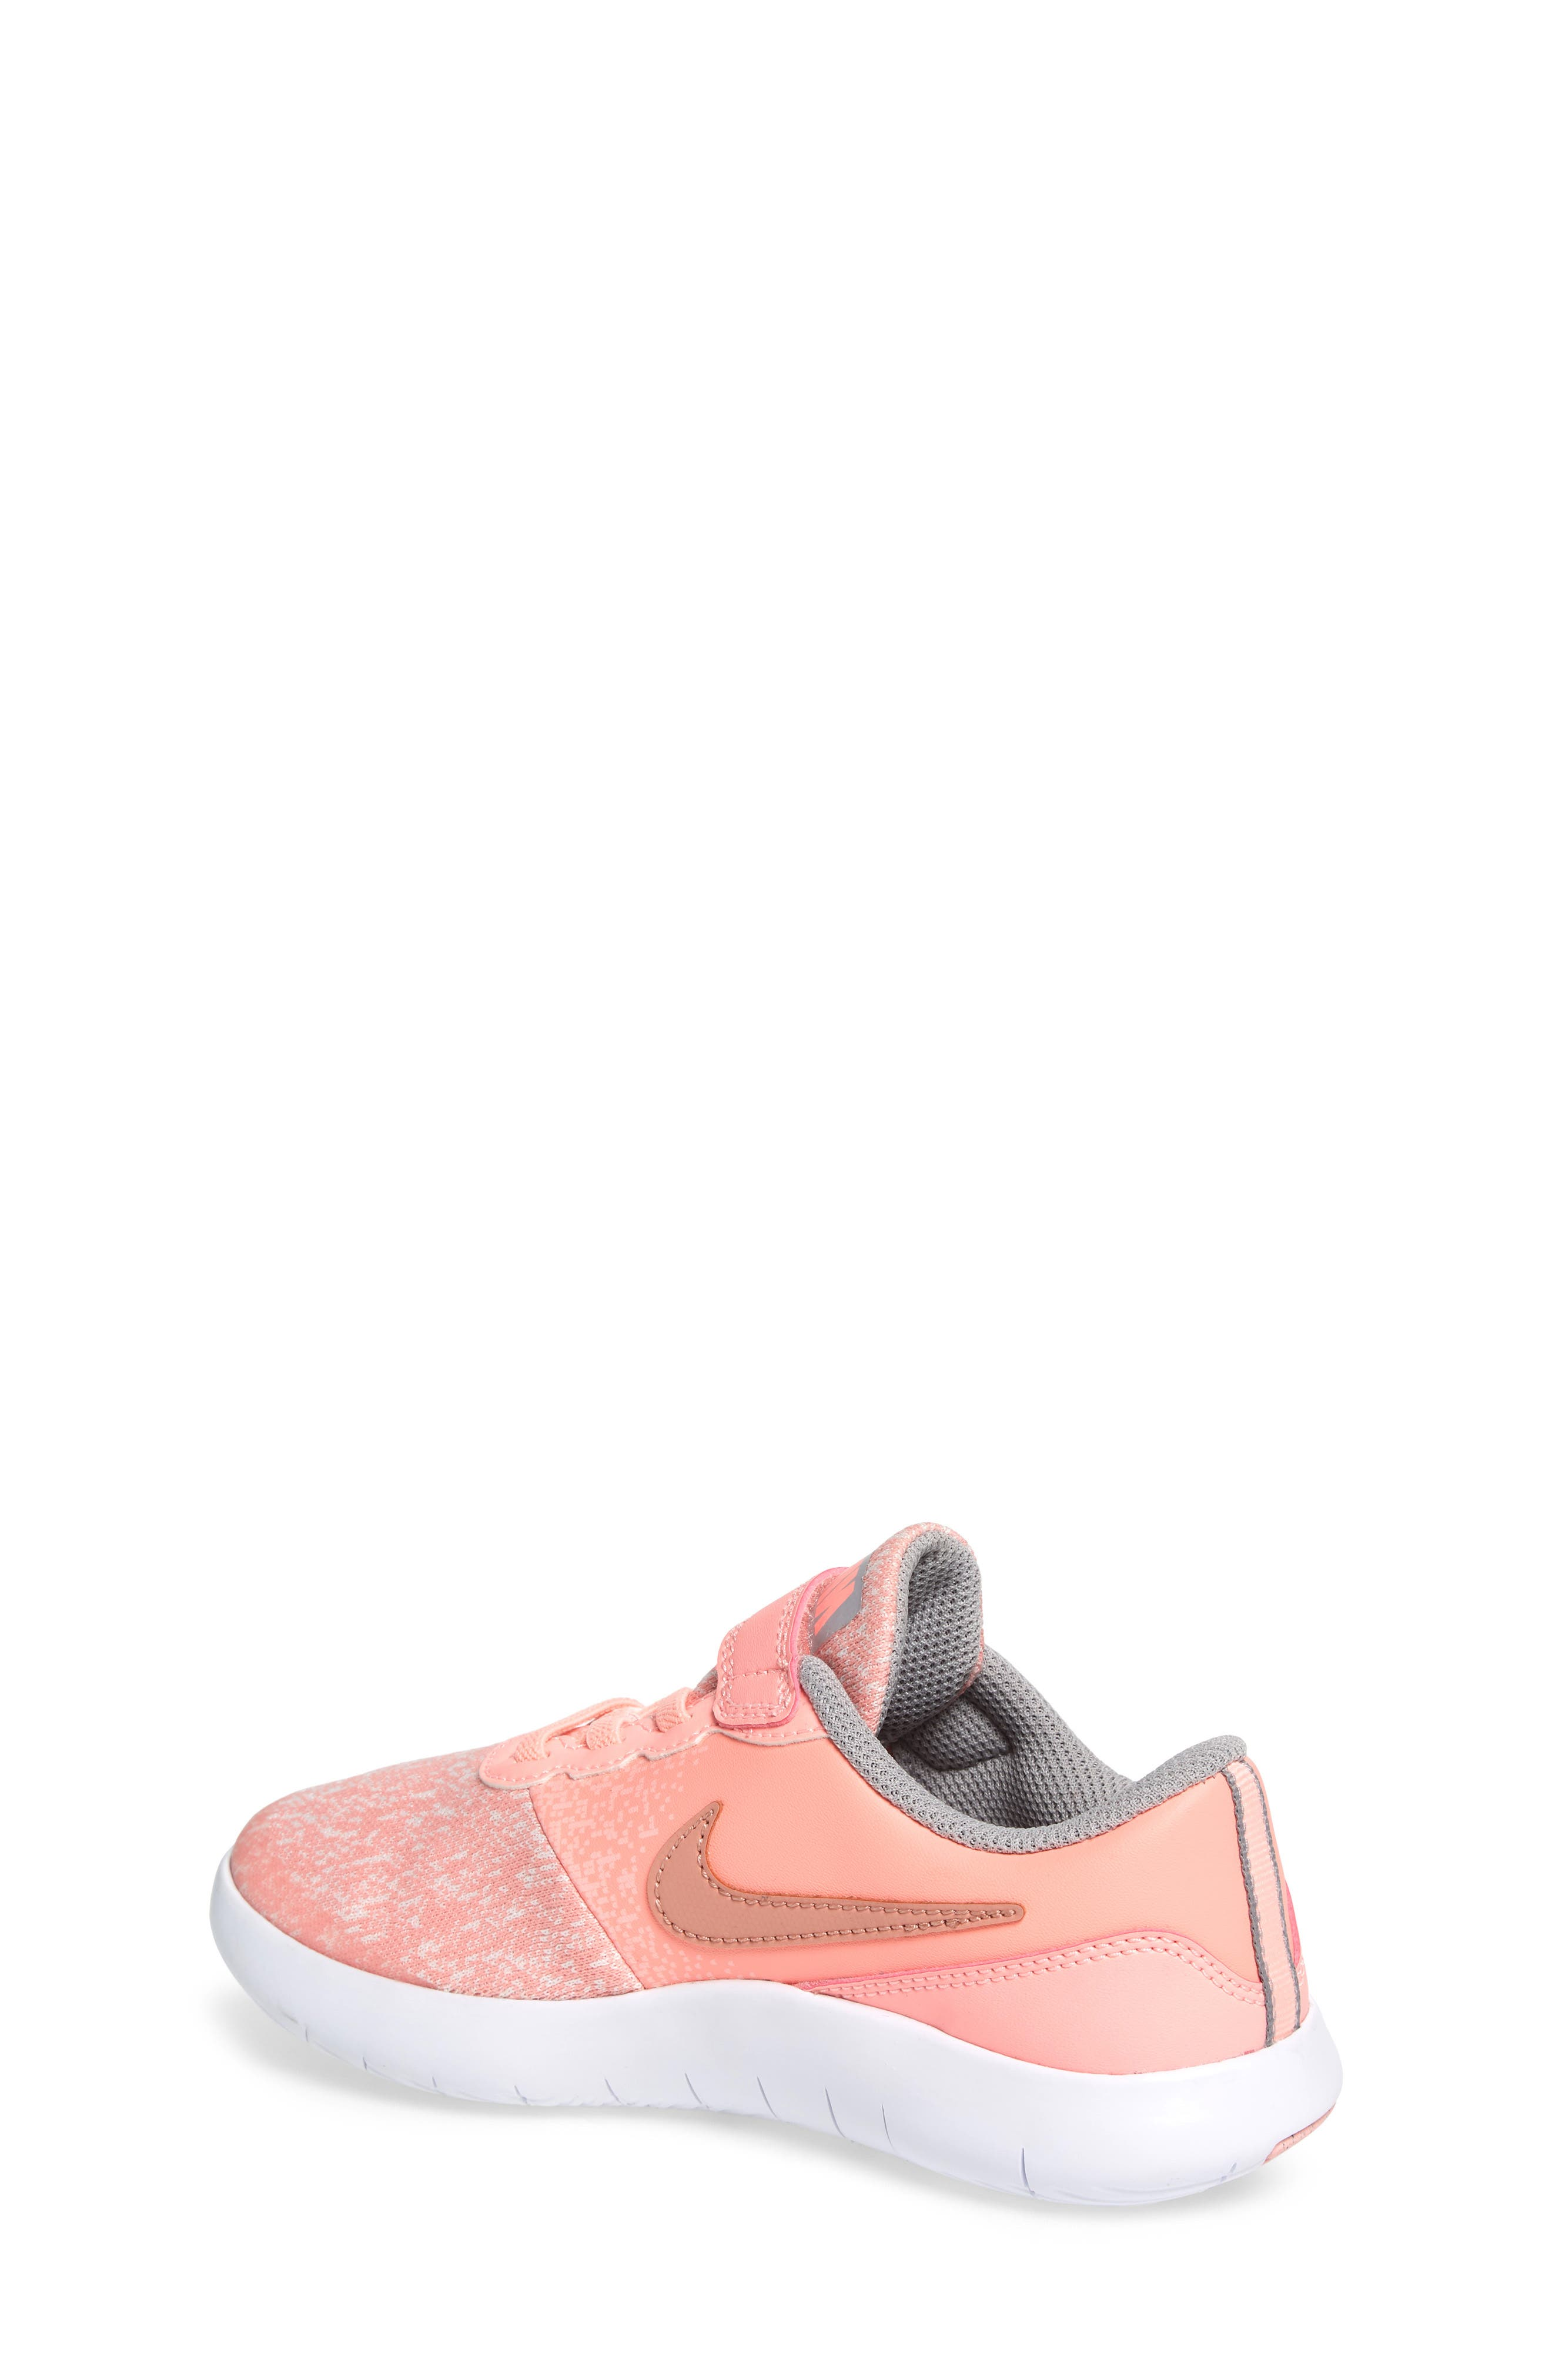 Flex Contact Running Shoe,                             Alternate thumbnail 2, color,                             Rose Gold/ Storm Pink